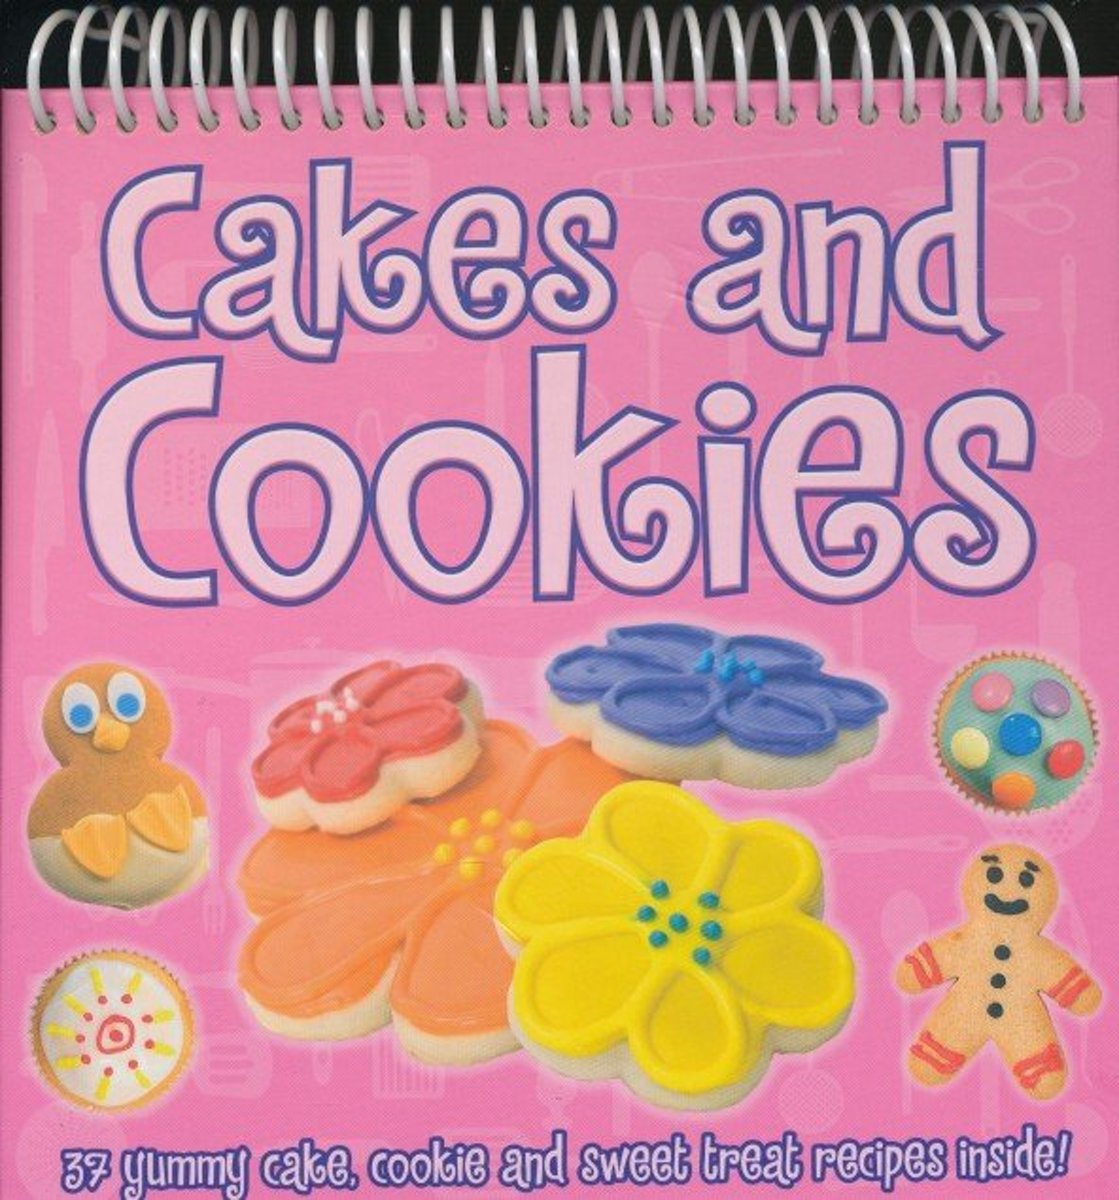 Cakes and cookies - 37 yummy cake, cookie and sweet treat recipes inside!